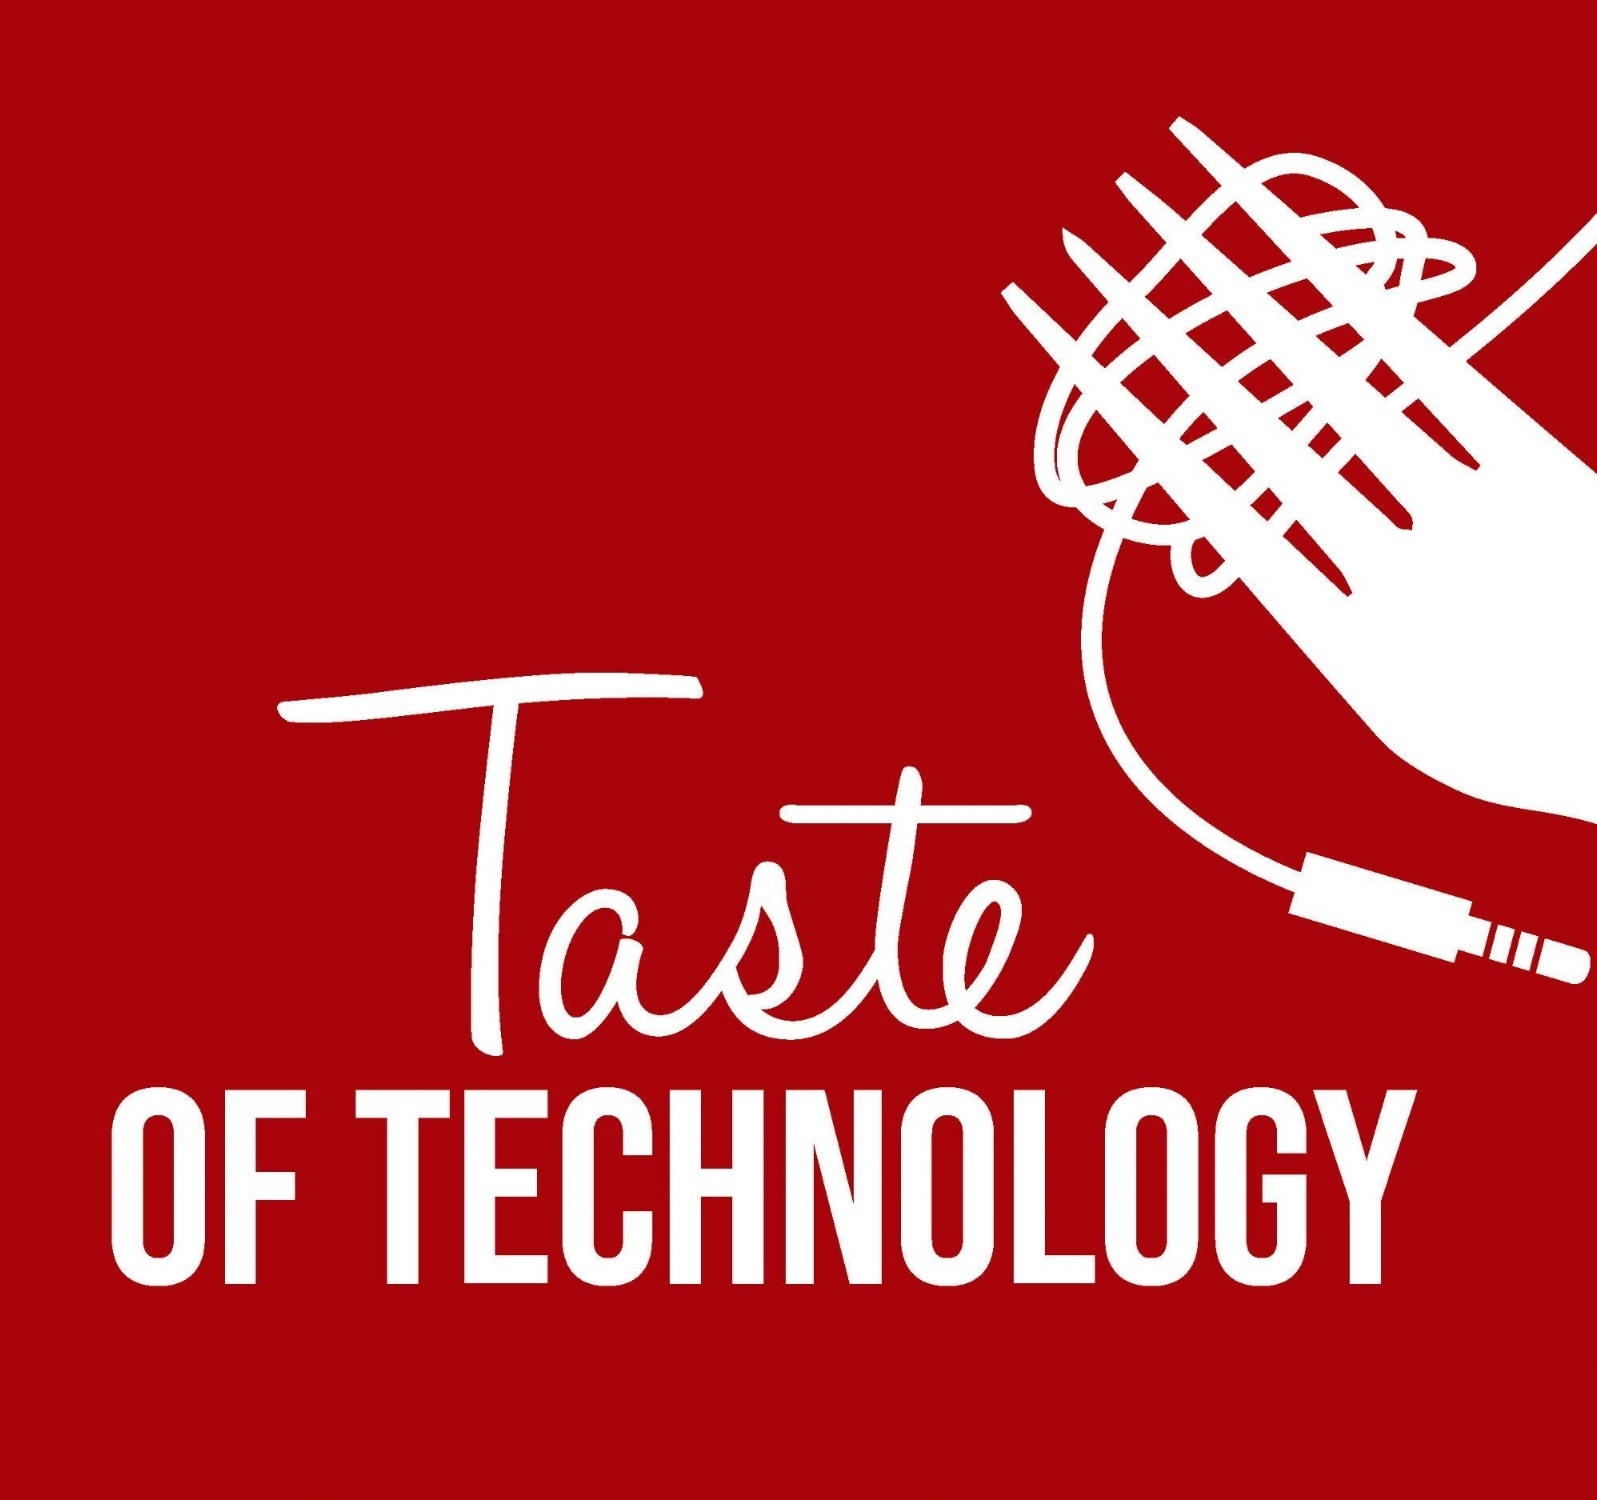 TASTE OF TECHNOLOGY - Thursday, November 7, 2019. 5:30 - 9:00 pm500 PEARL STREET BUFFALO 14202DOWNTOWN BUFFALO'S NEWEST DESTINATION